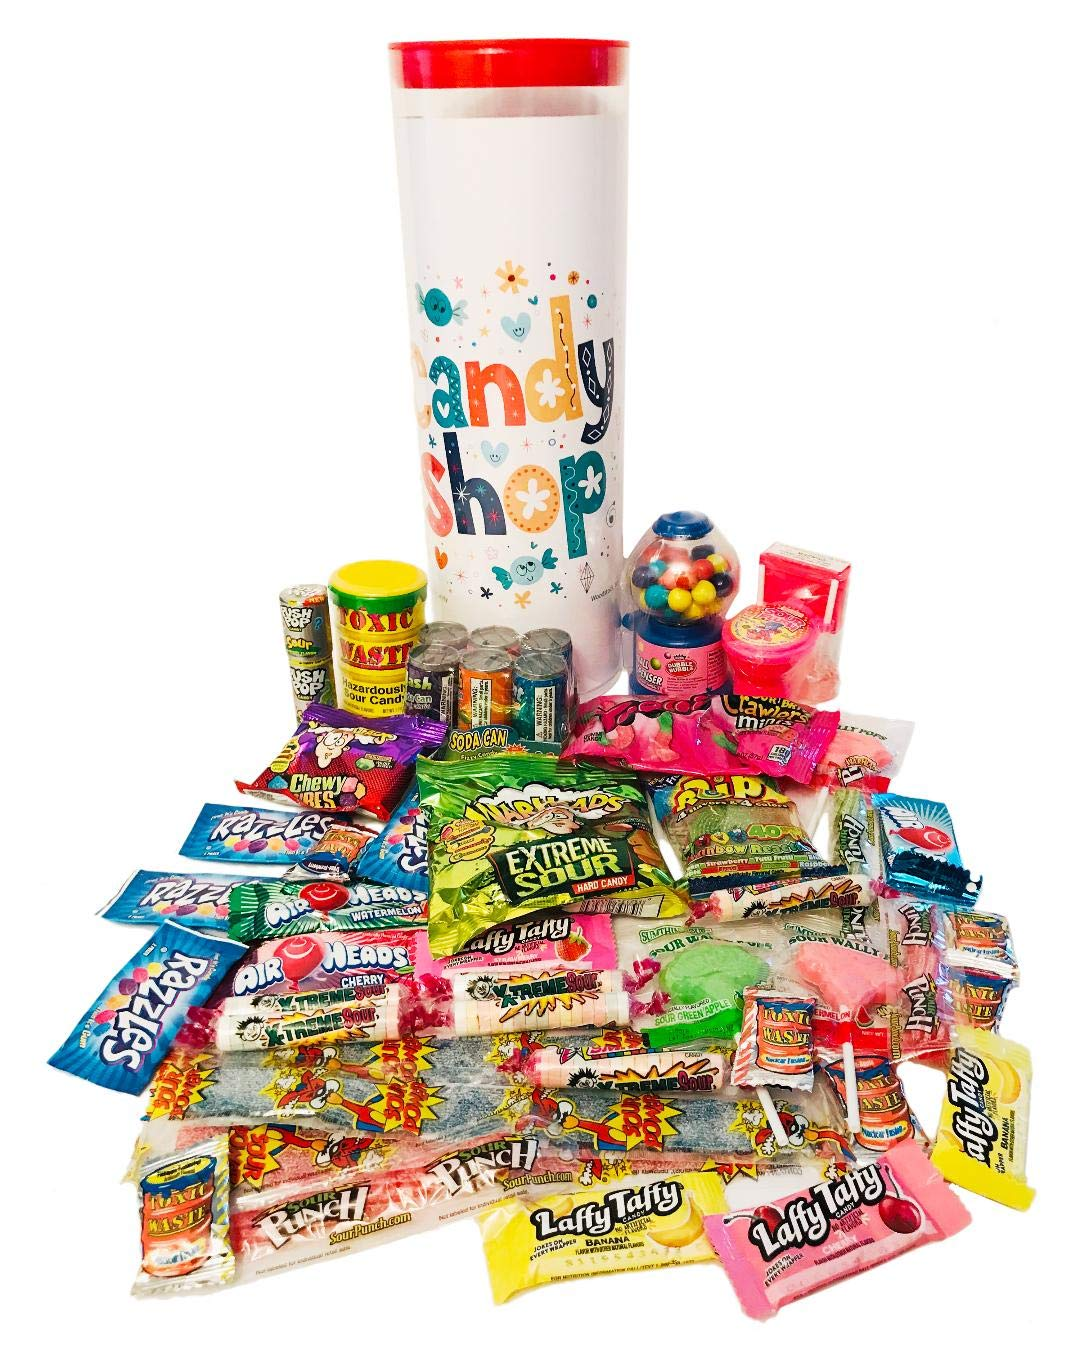 Childrens Birthday Celebration, Get Well Candy Gift Tower Assortment - Toxic Waste, Warheads Extreme, Laffy Taffy, Airheads, Belts, Sour Flush Candy, Nuclear Fusion, Bubble Gum Dispenser, Smarties